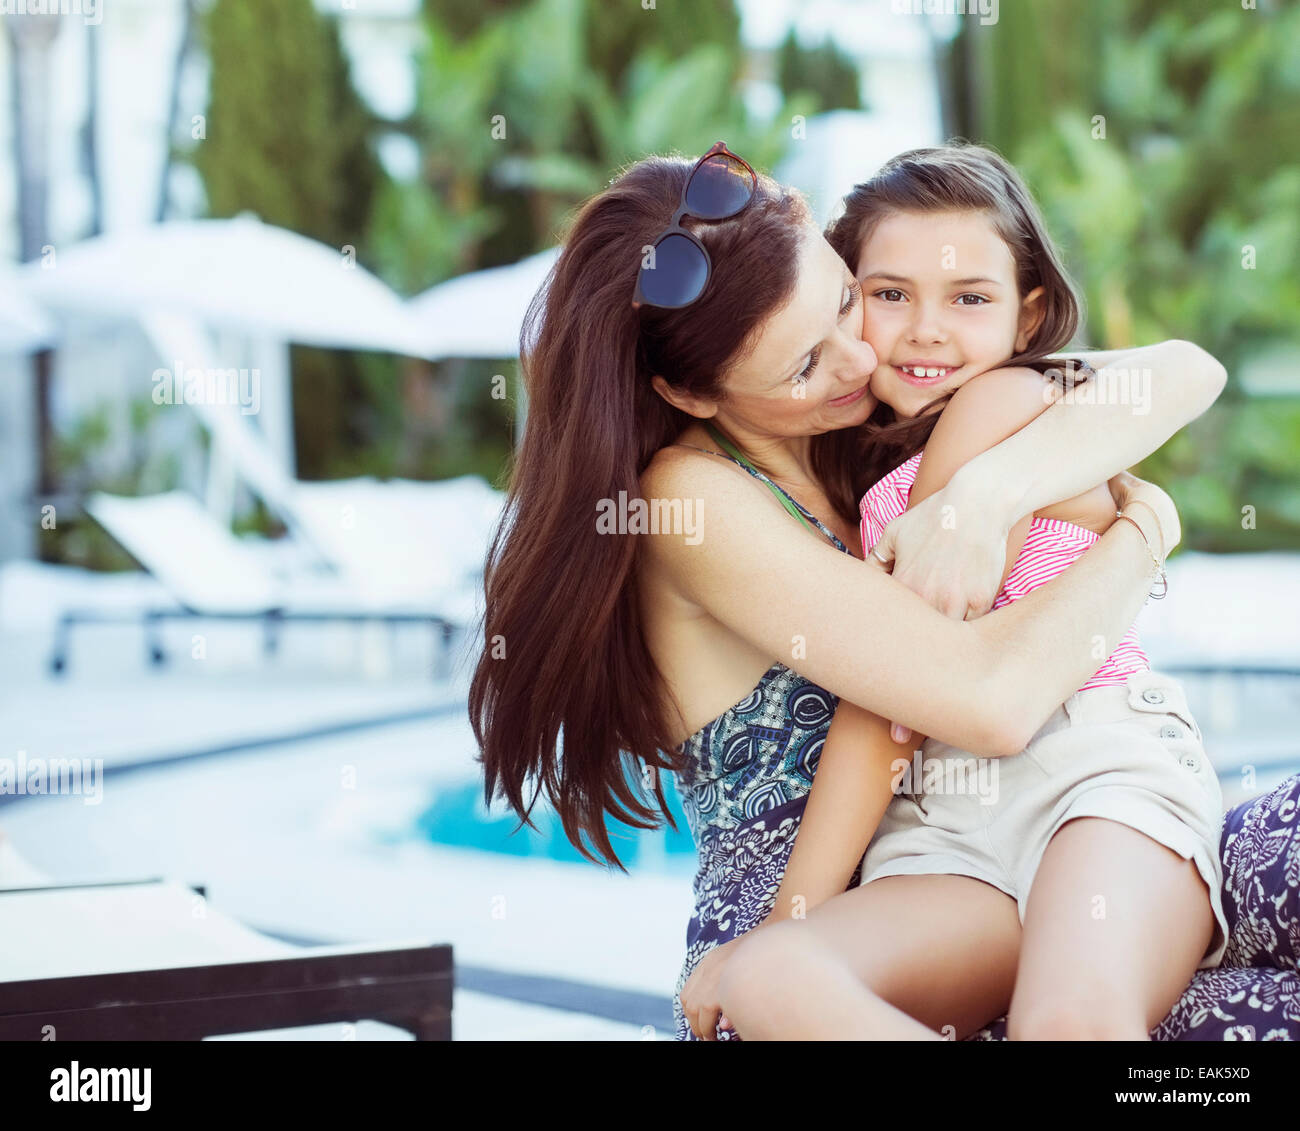 Mother embracing her daughter on poolside - Stock Image